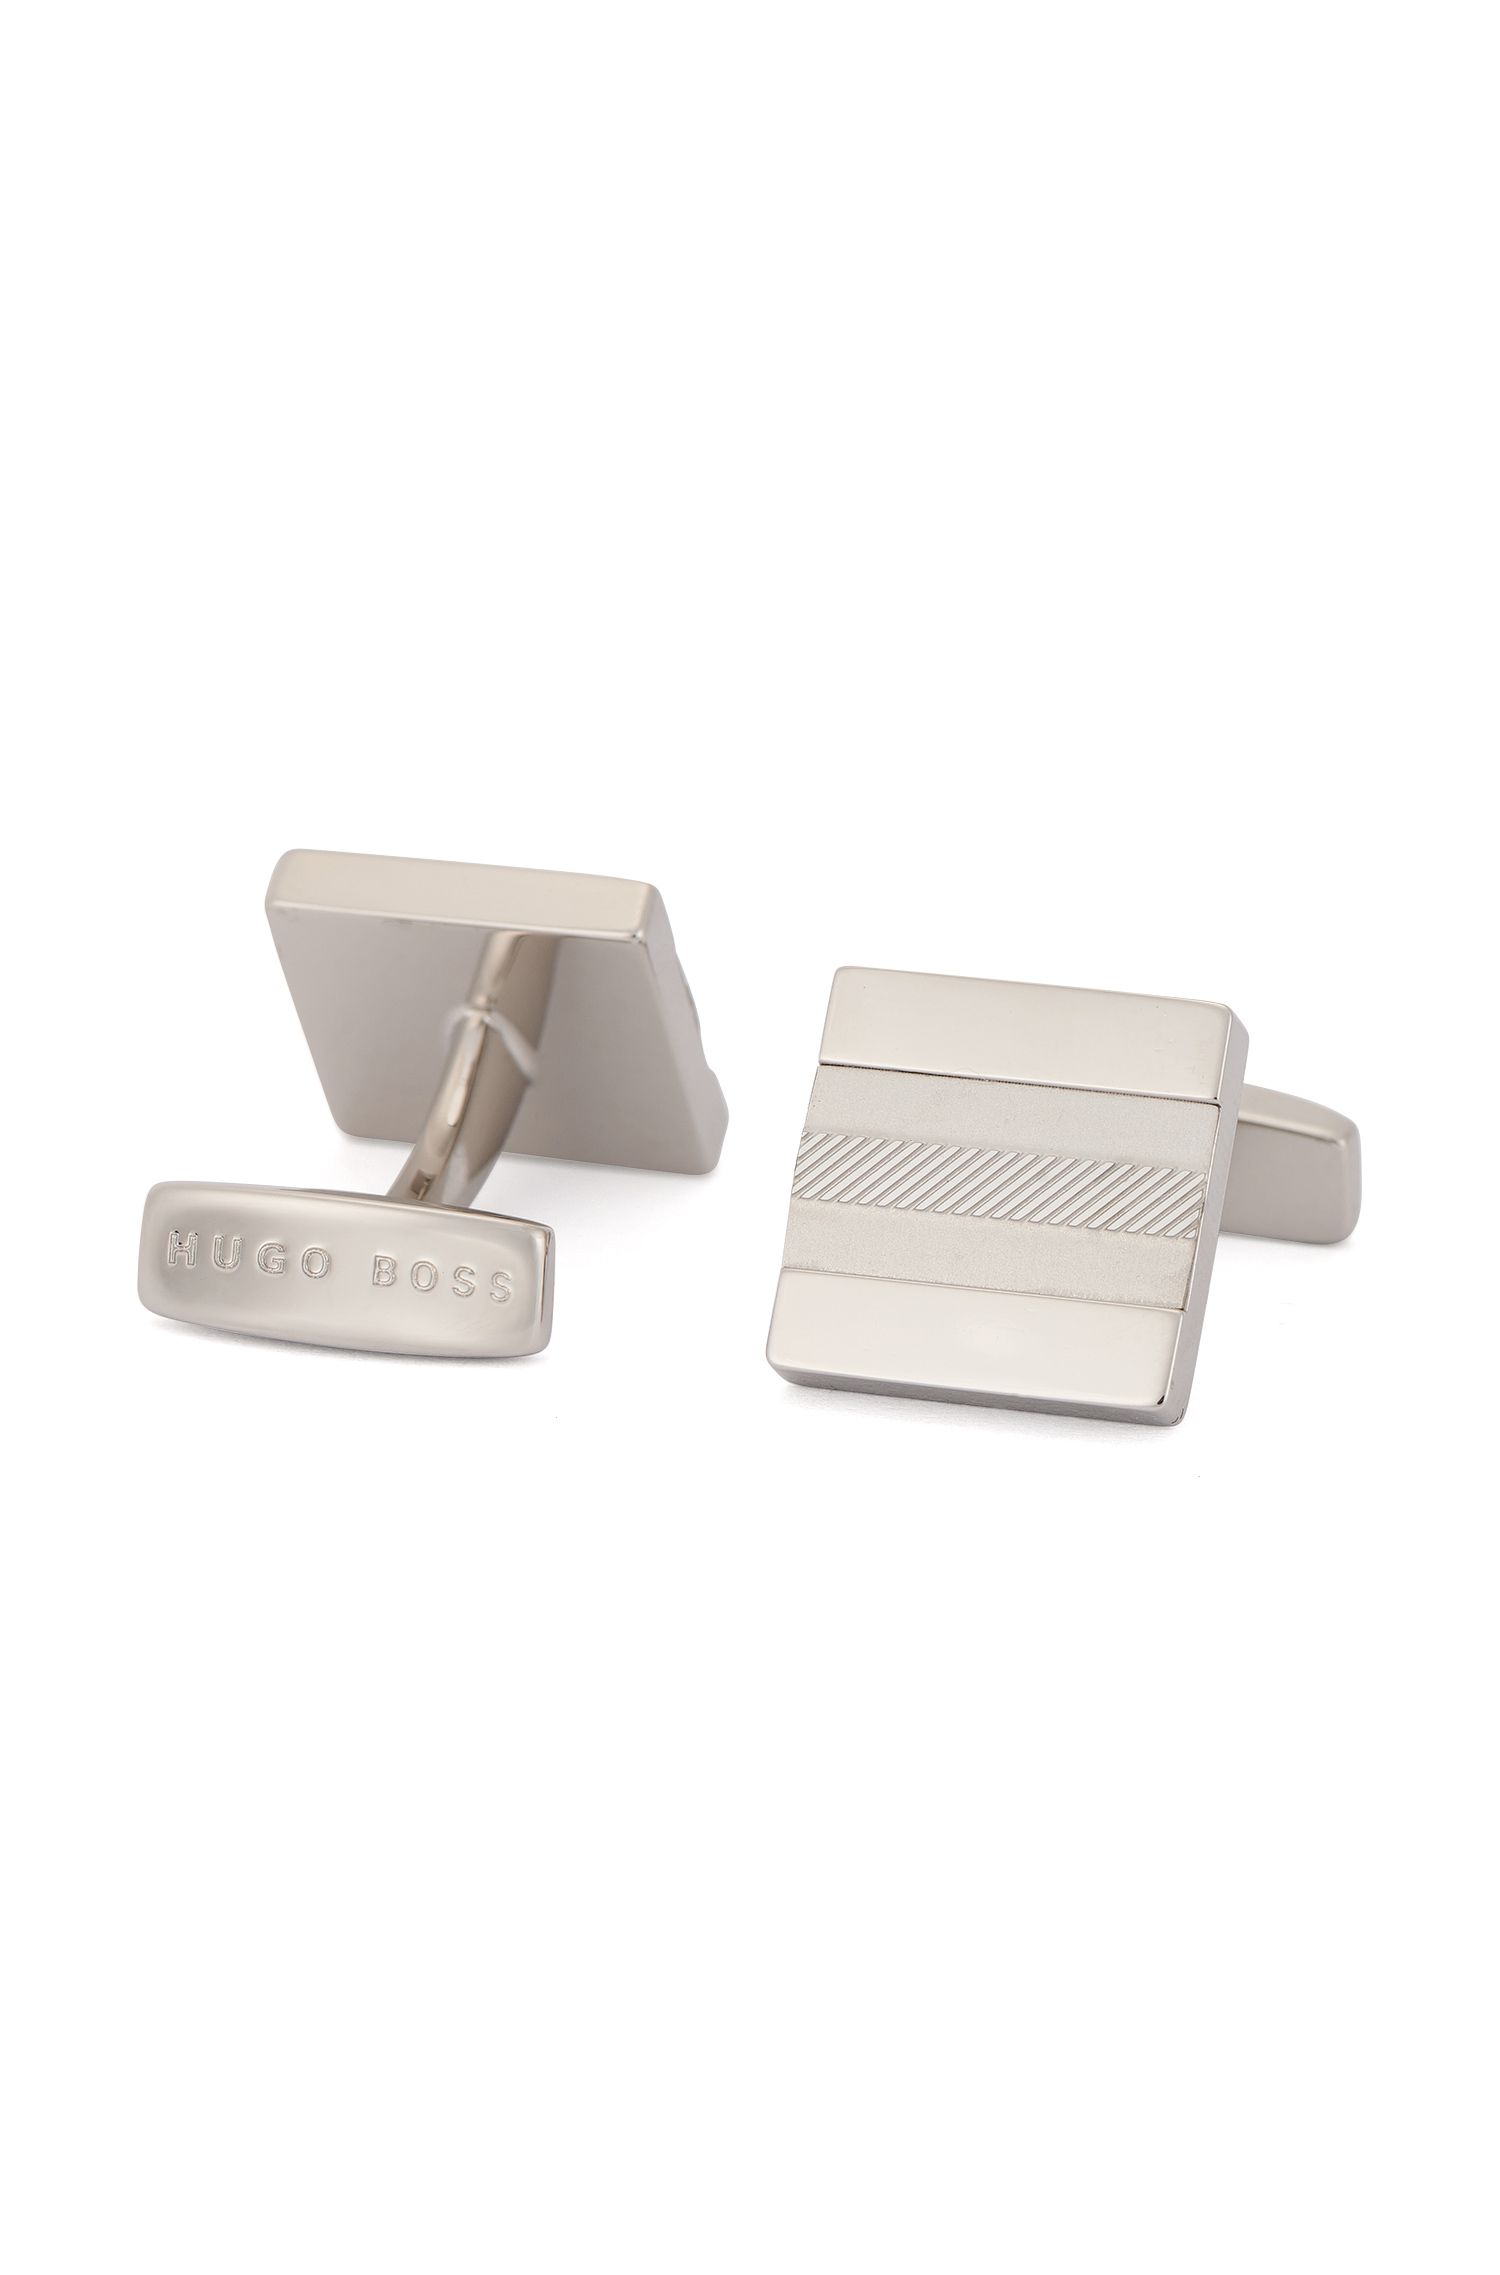 Square cufflinks in polished and brushed brass